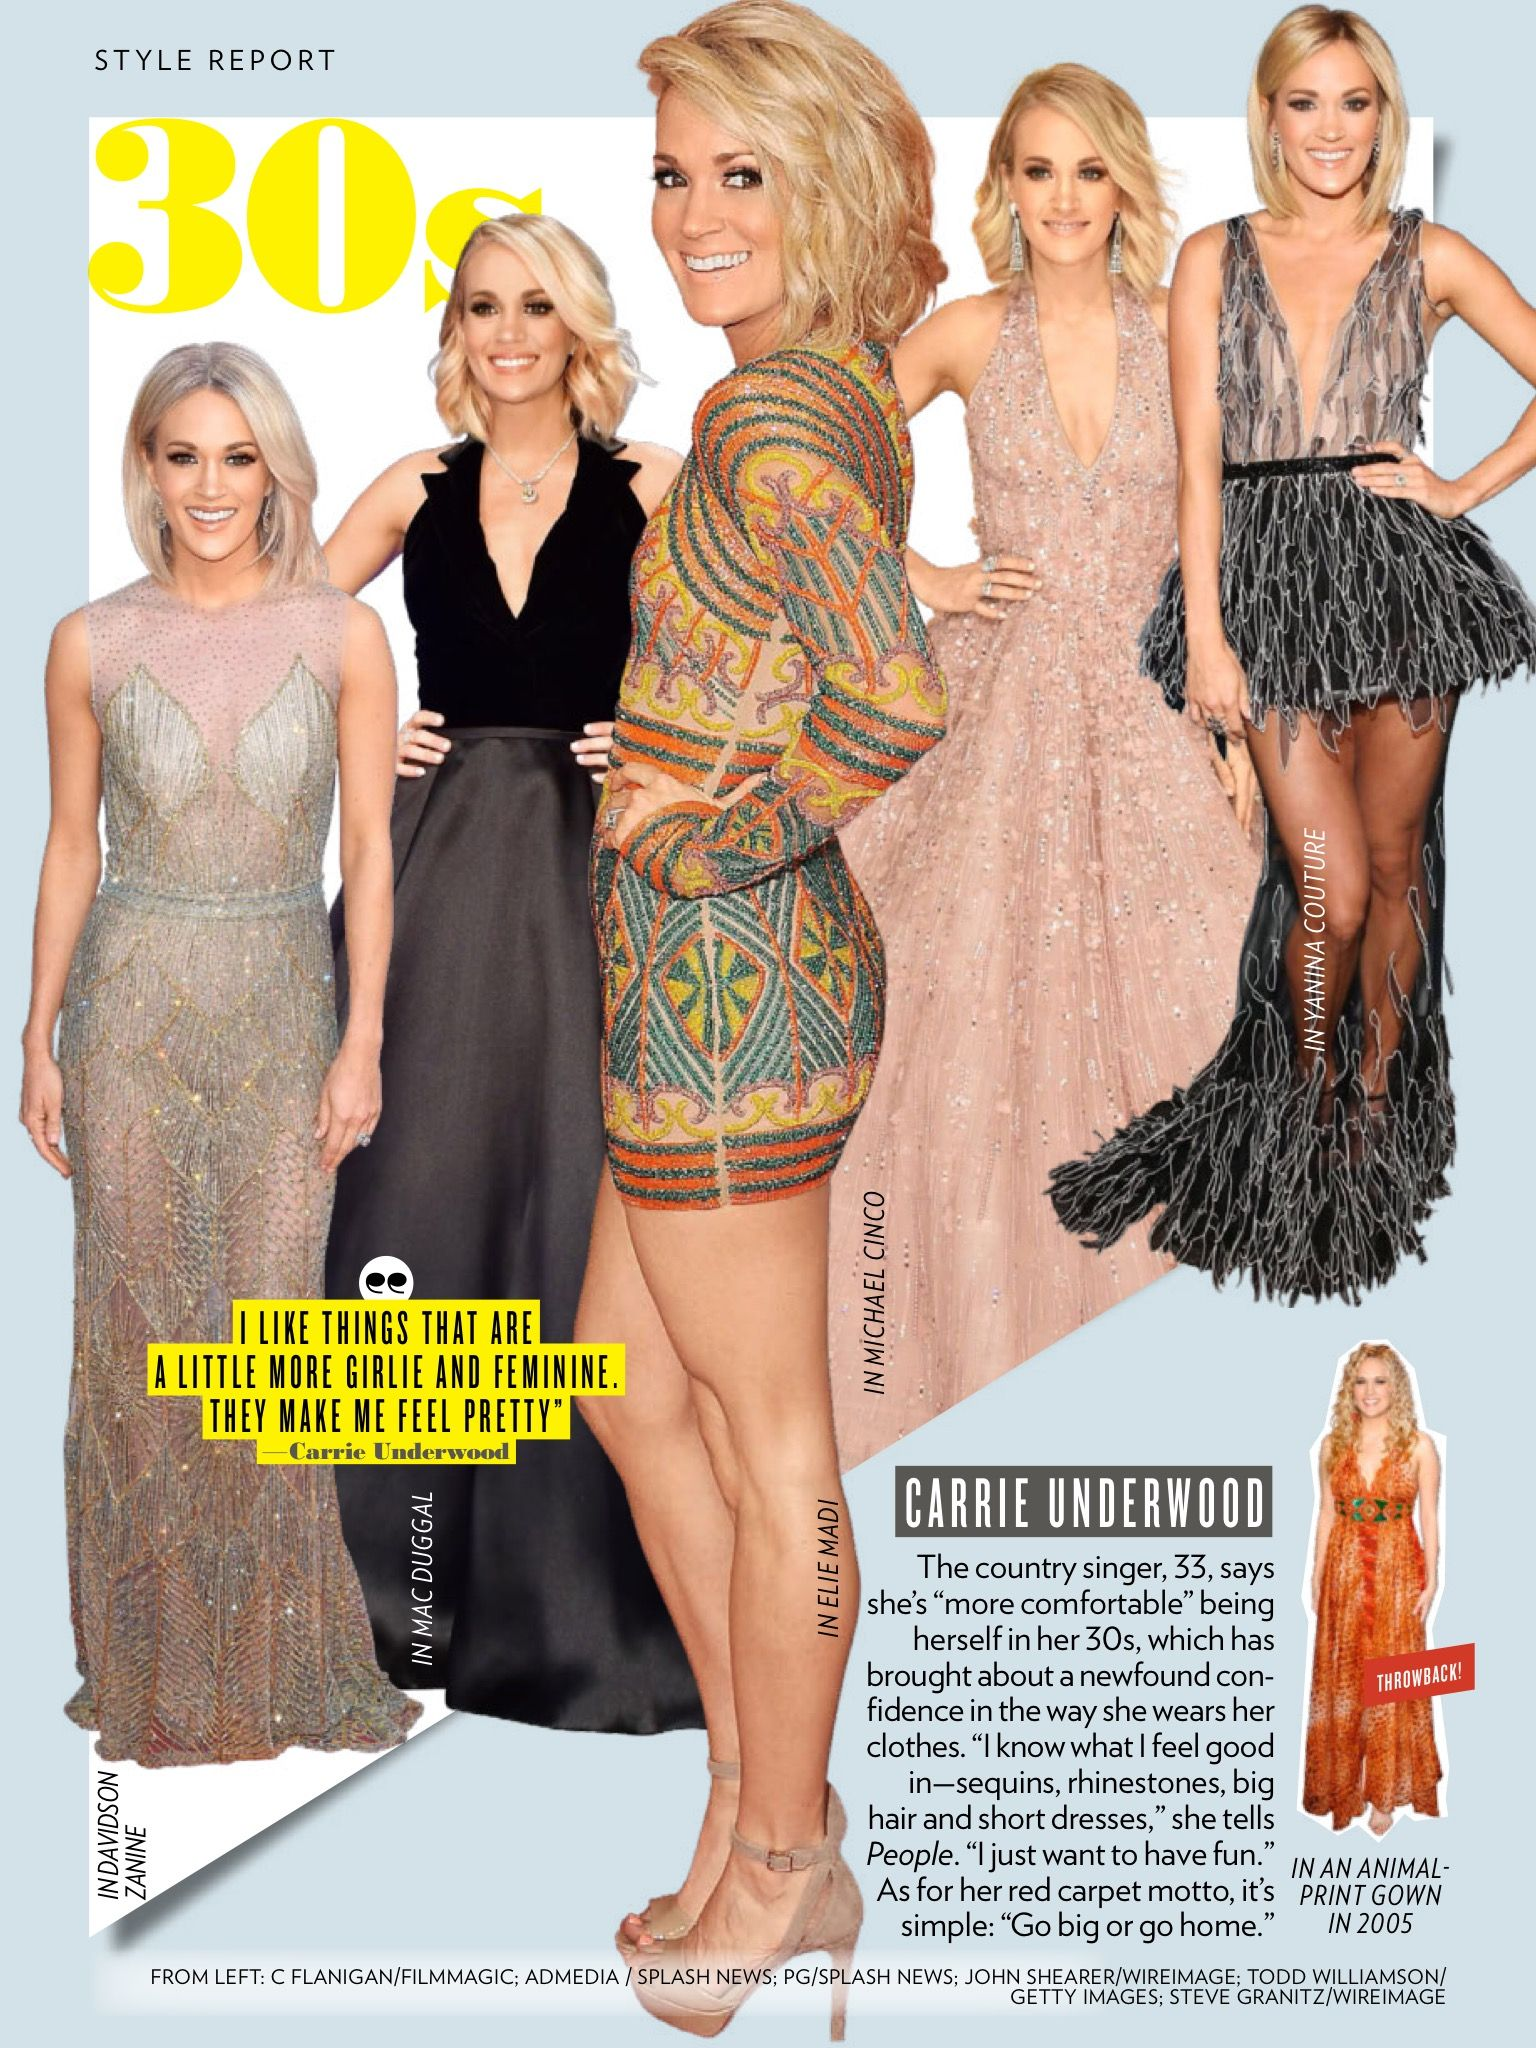 February issue of people featuring carrieunderwood